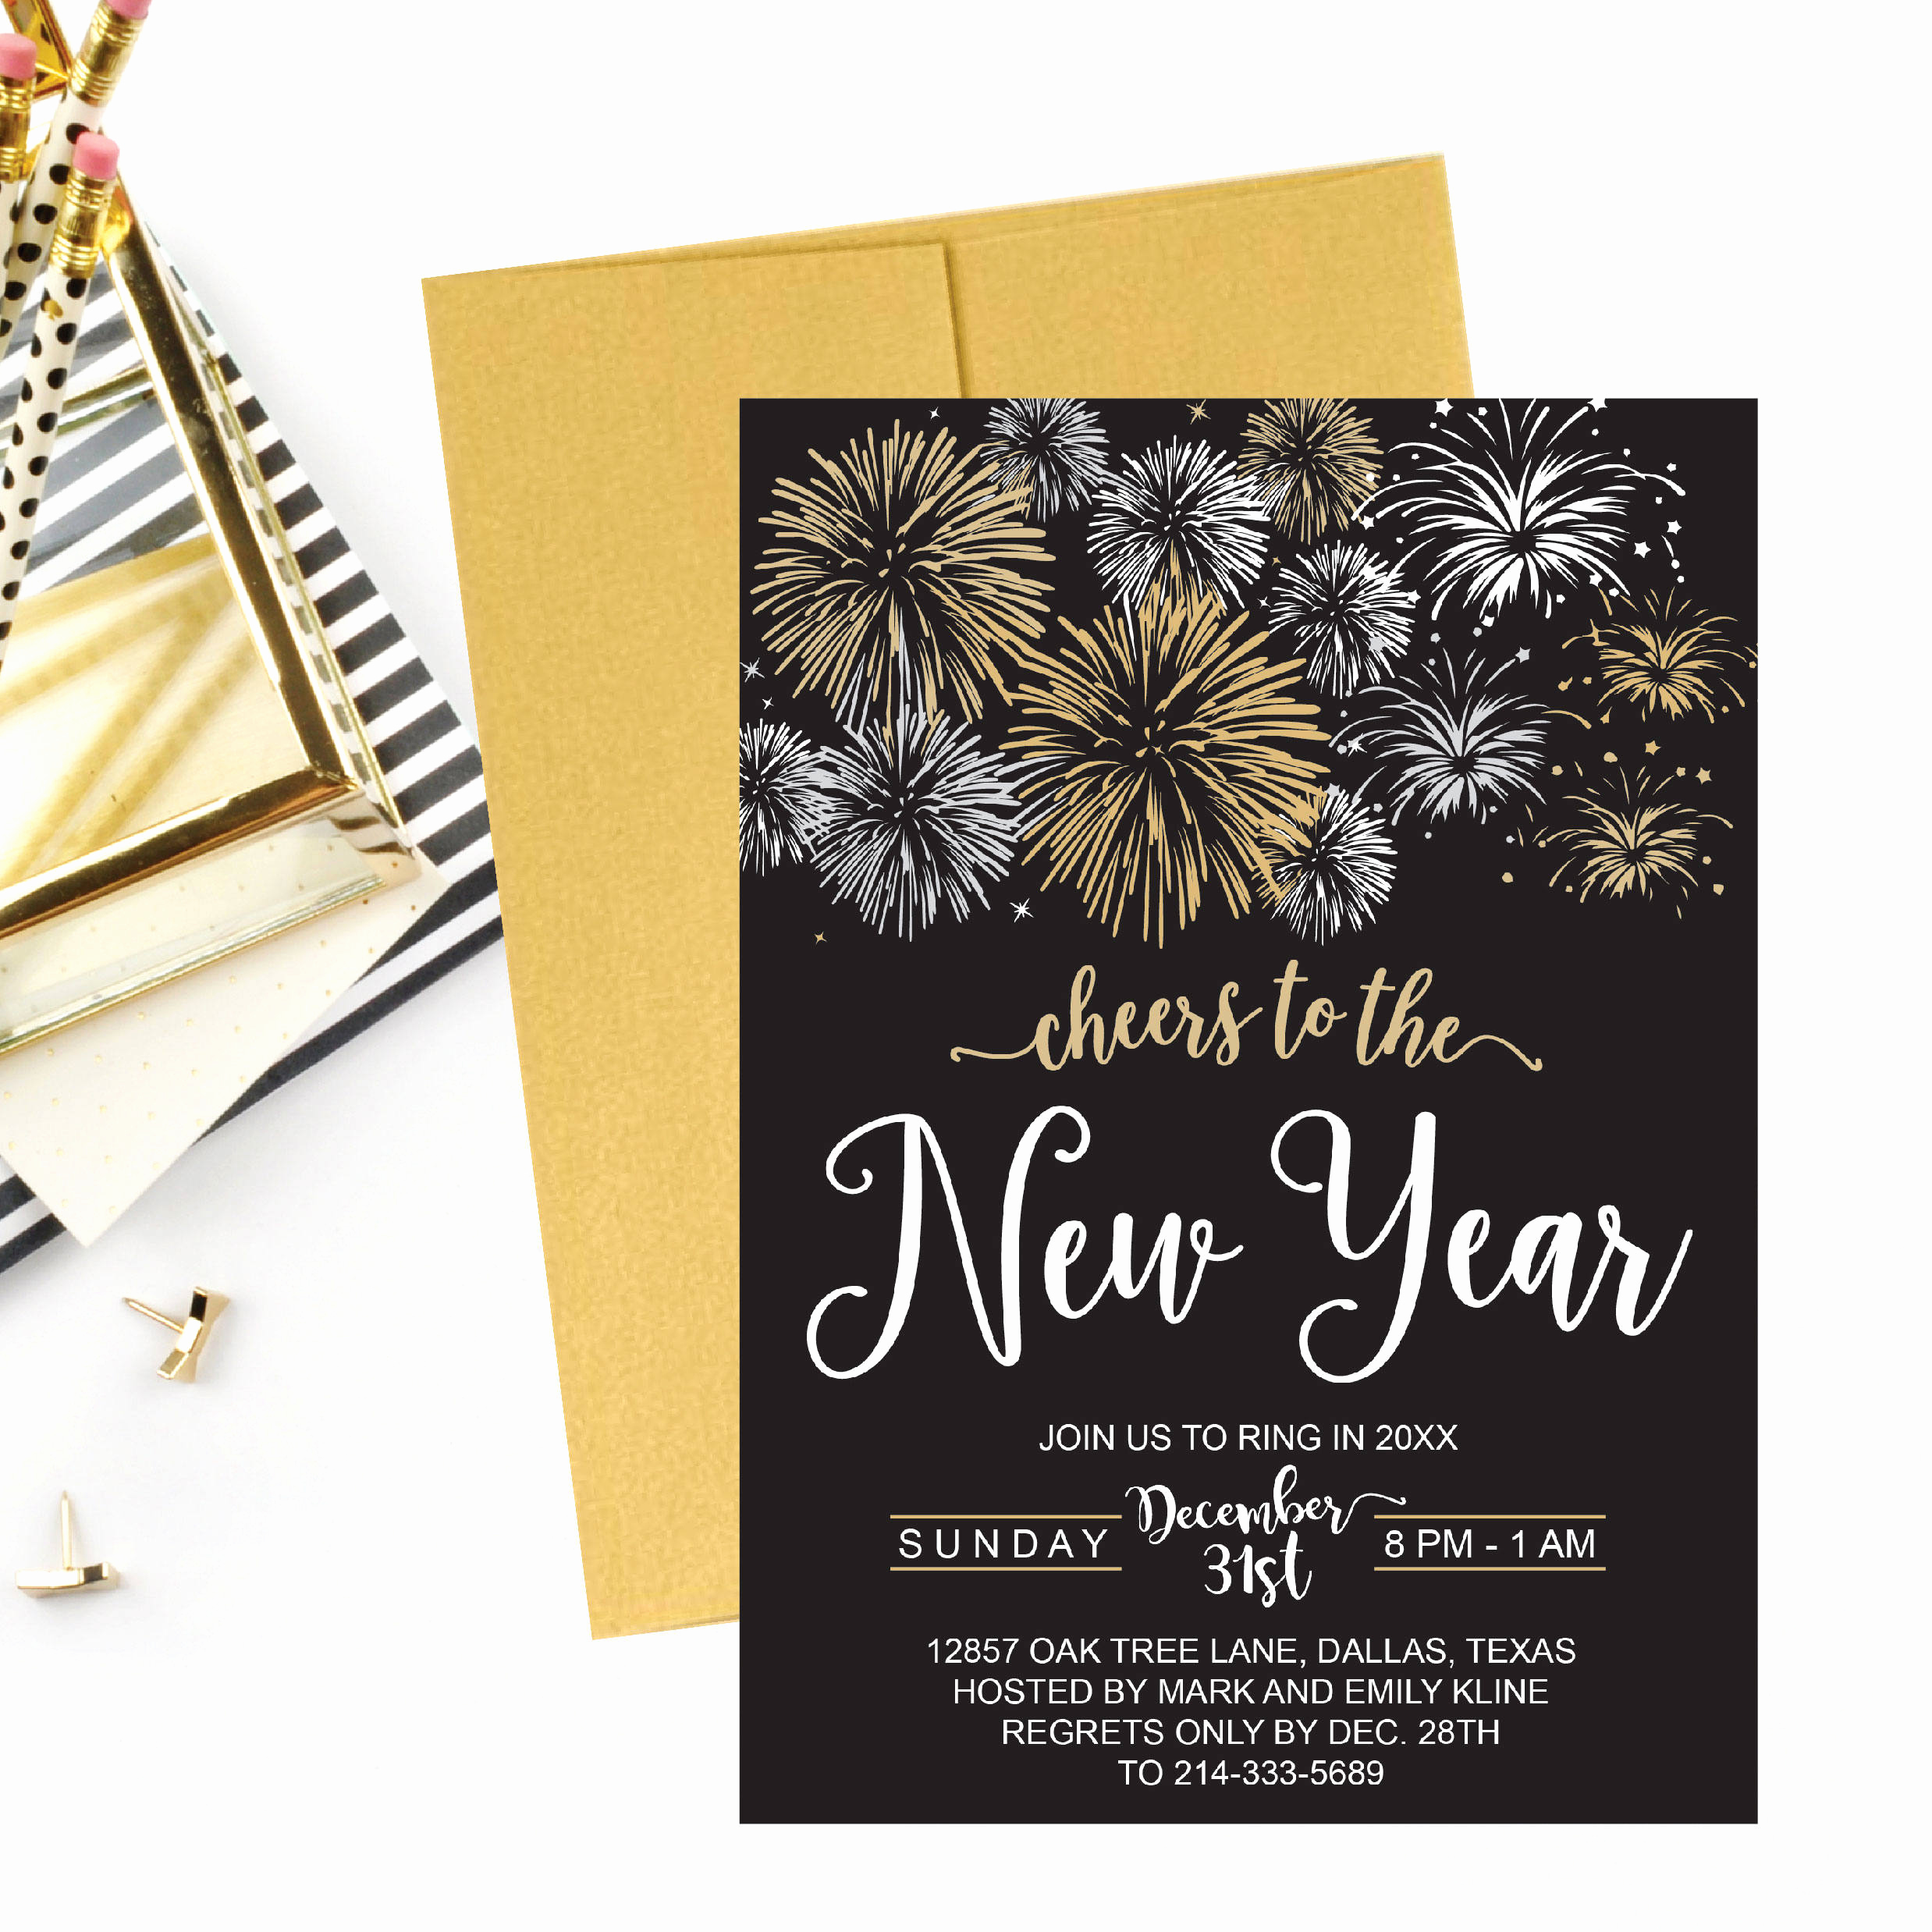 New Year Party Invitation Template Fresh New Year S Eve Party Invitation Template Elegant Black